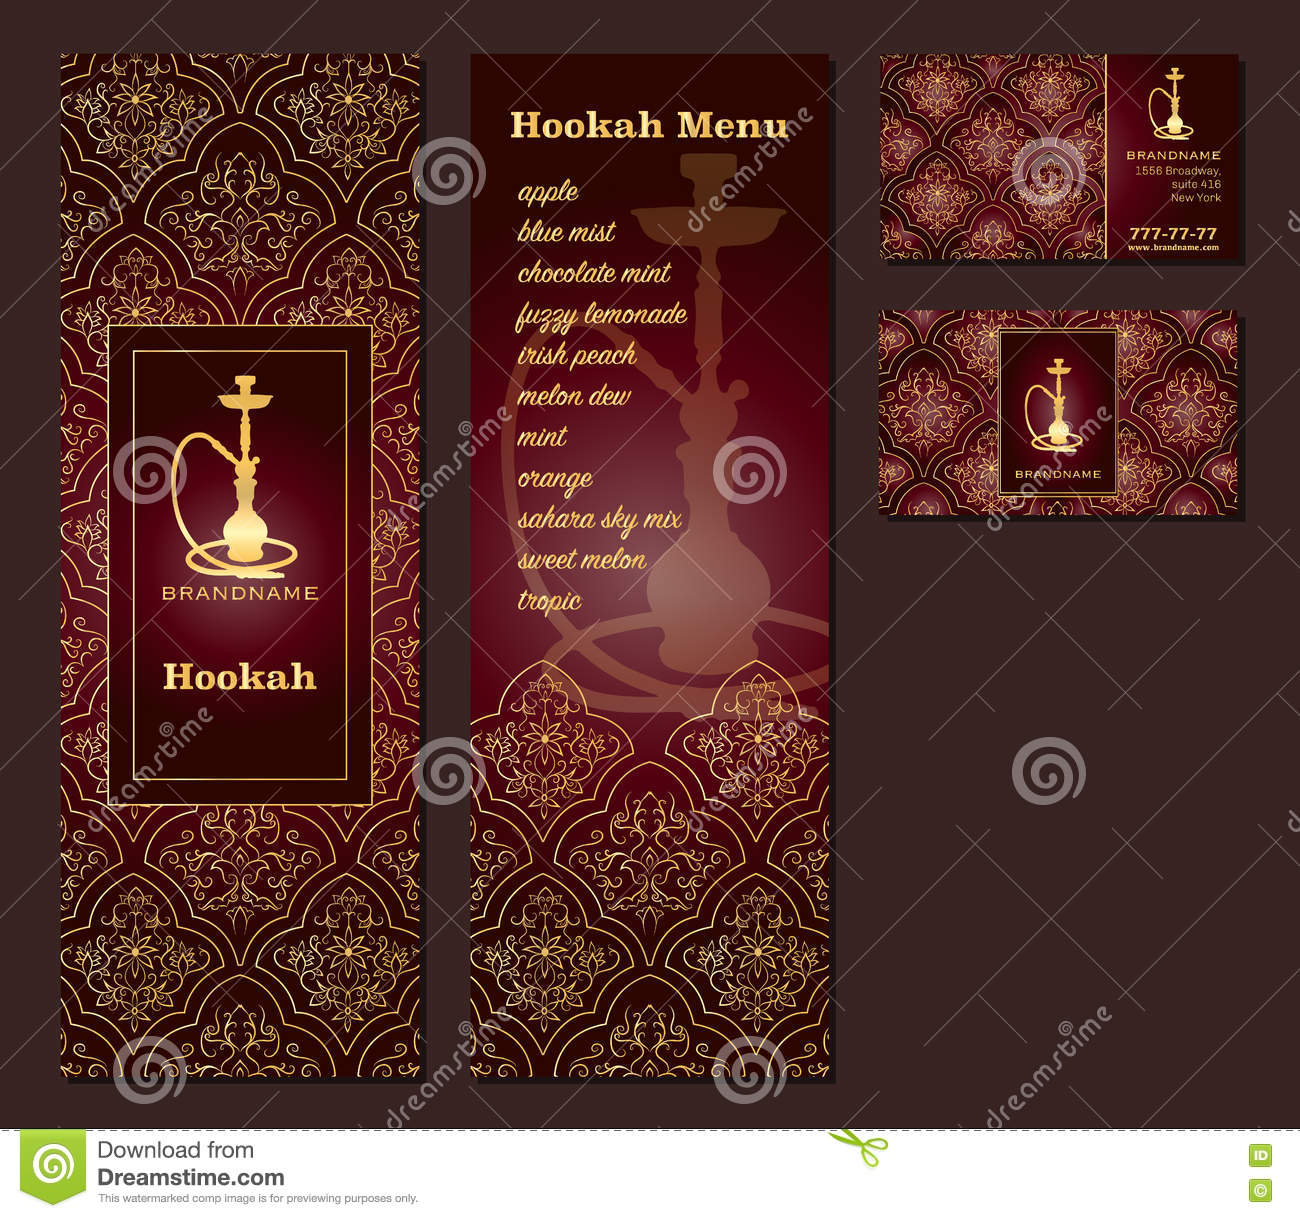 Vector illustration of a menu for a restaurant or cafe arabian download vector illustration of a menu for a restaurant or cafe arabian oriental cuisine with hookah reheart Choice Image